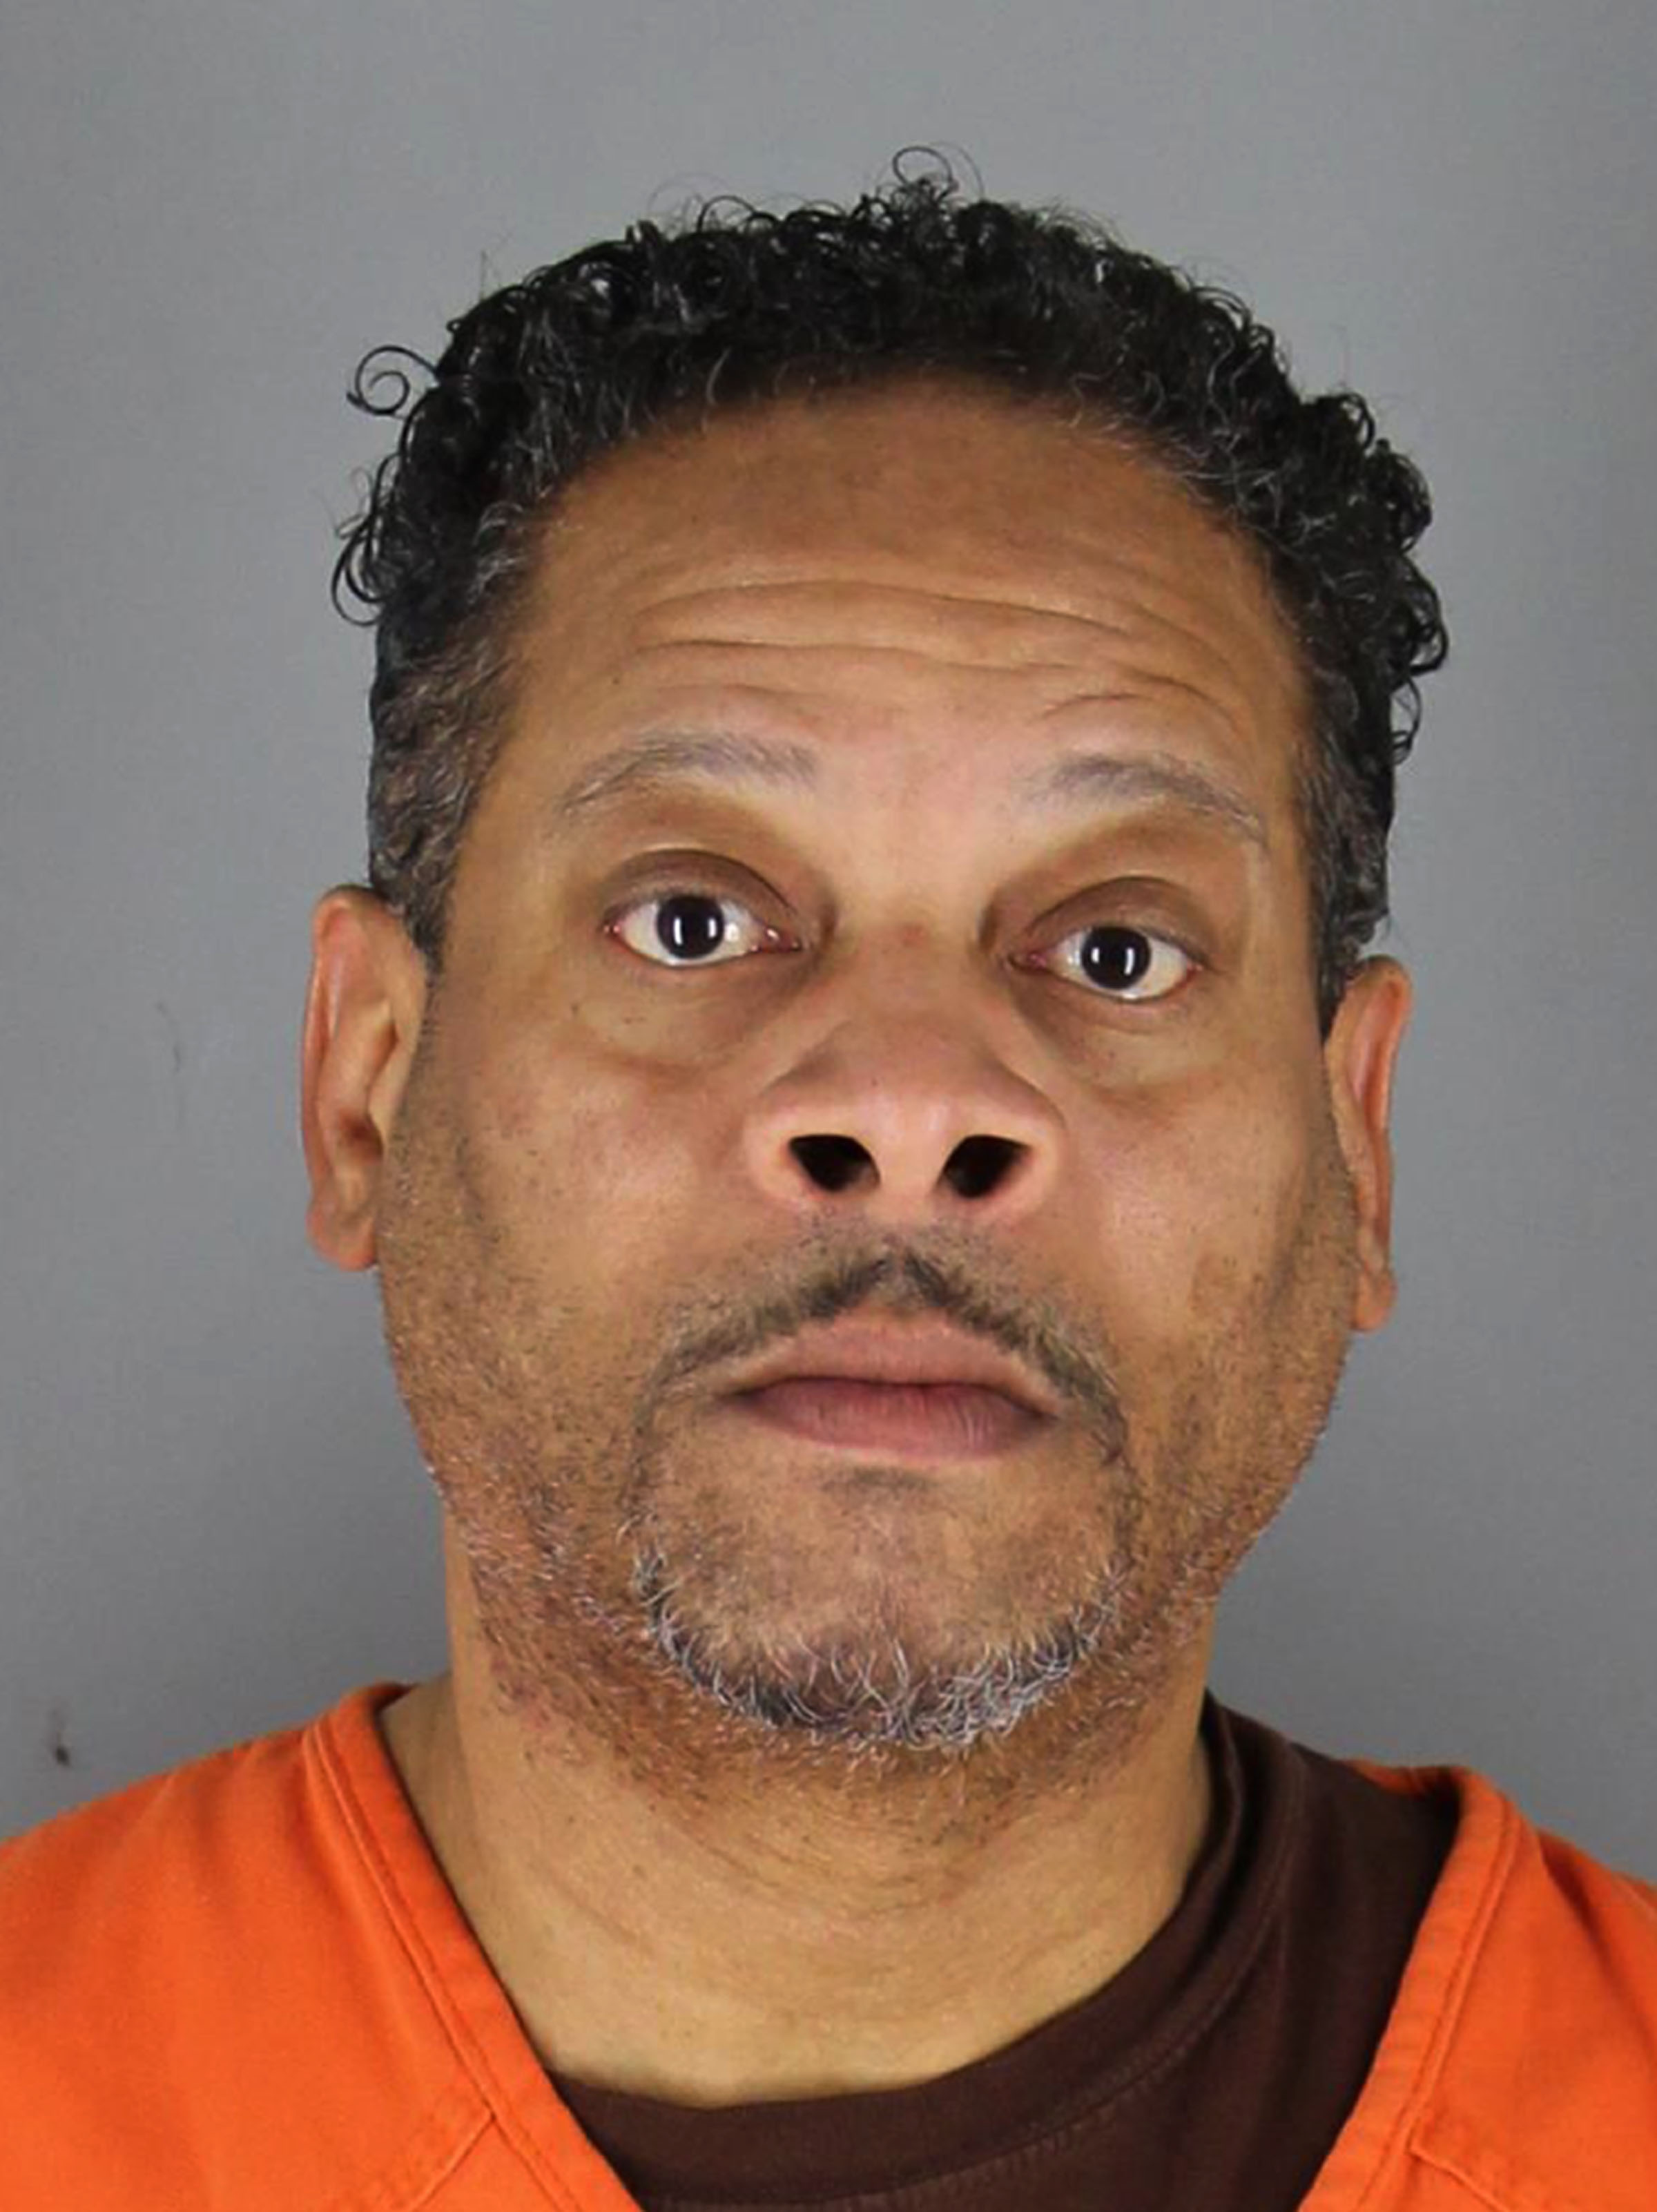 Nubmer for sex wit 20 year ofel male in mpls